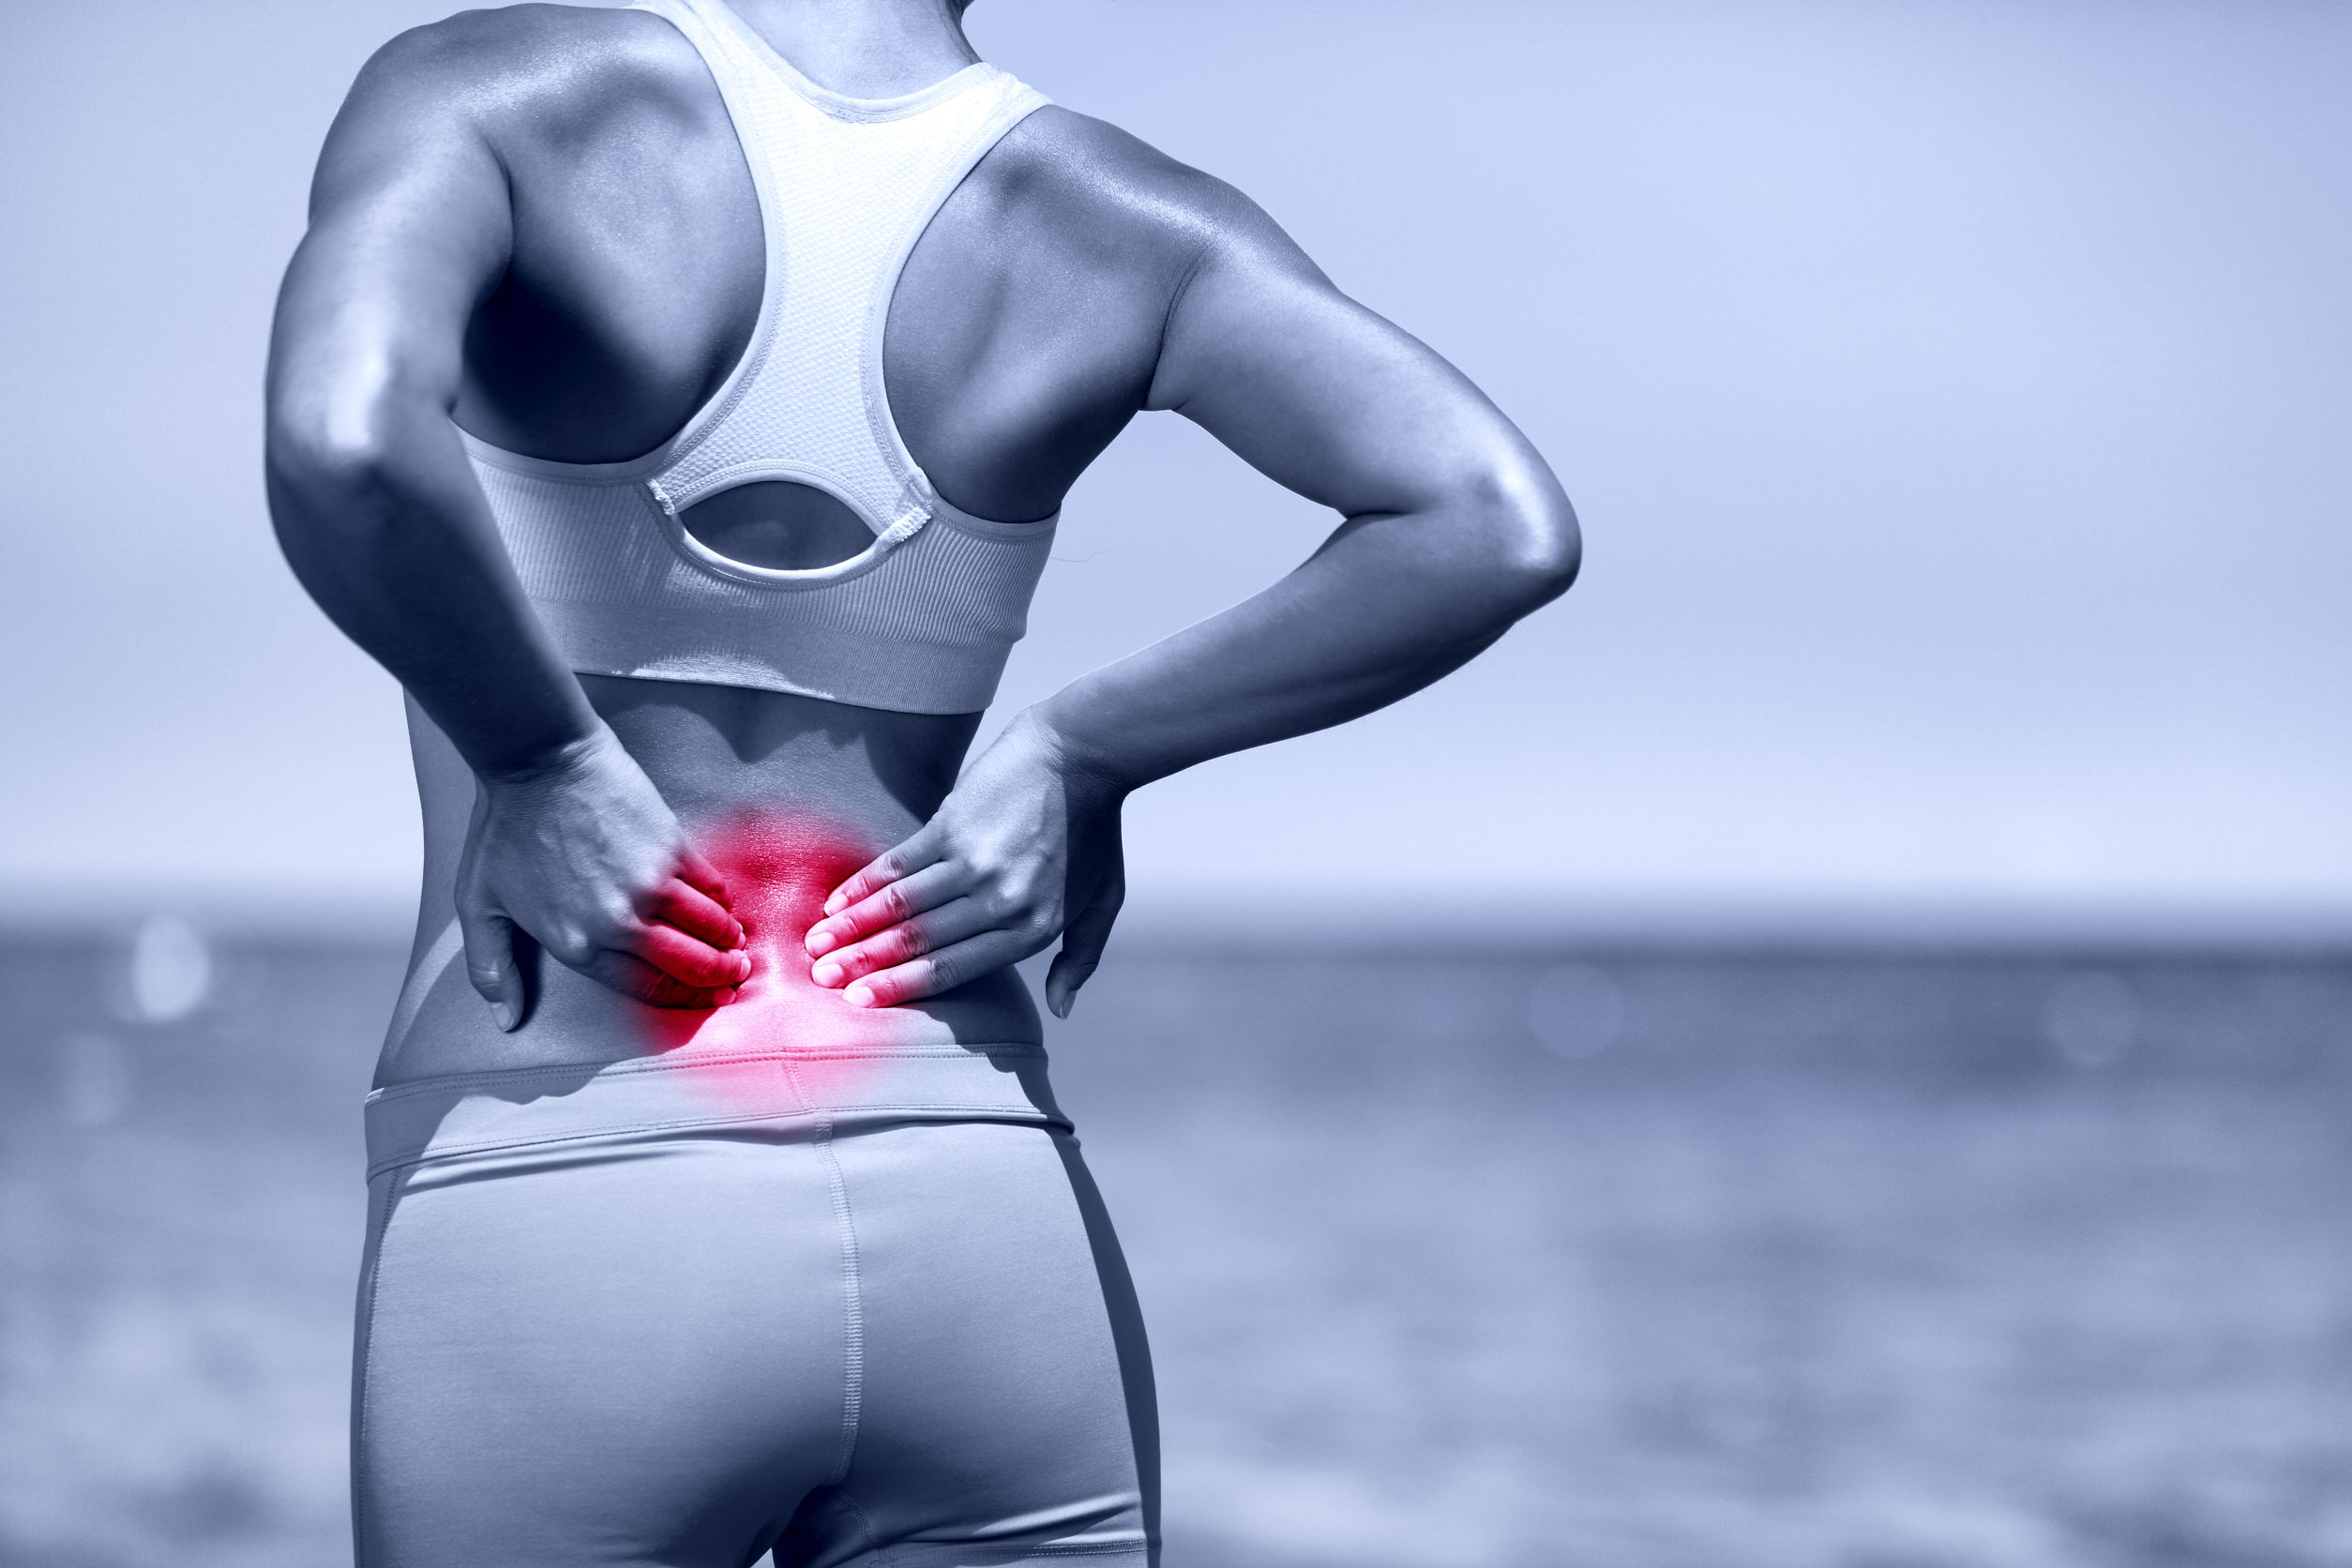 Best Chiropractor South Surrey Presents Spinal Decompression And Improvement In Whole Body